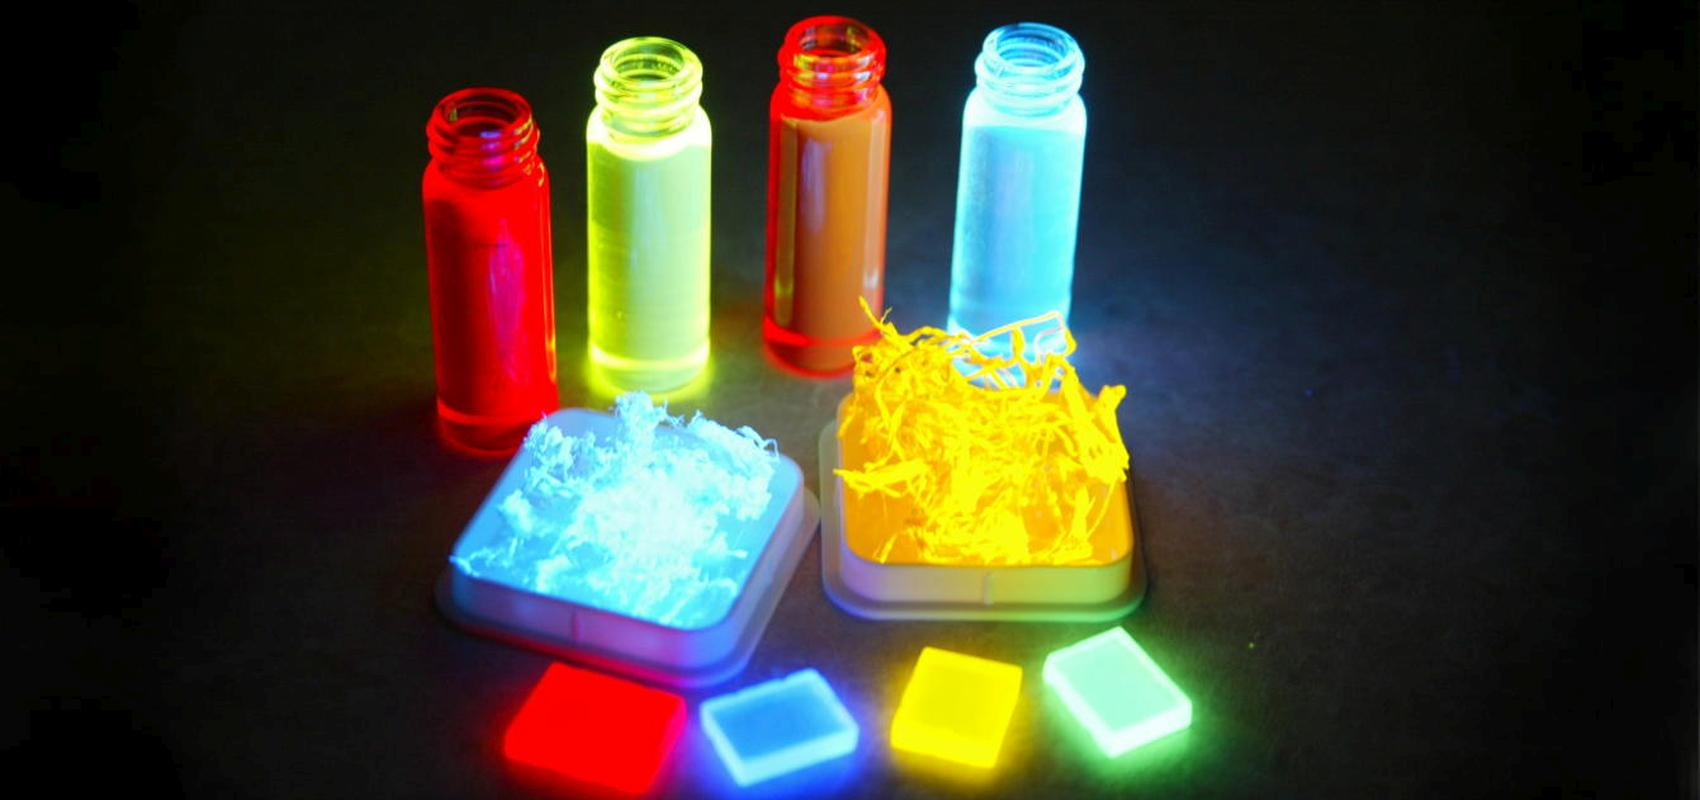 Photograph: Fluorescent materials used in organic photonic devices.